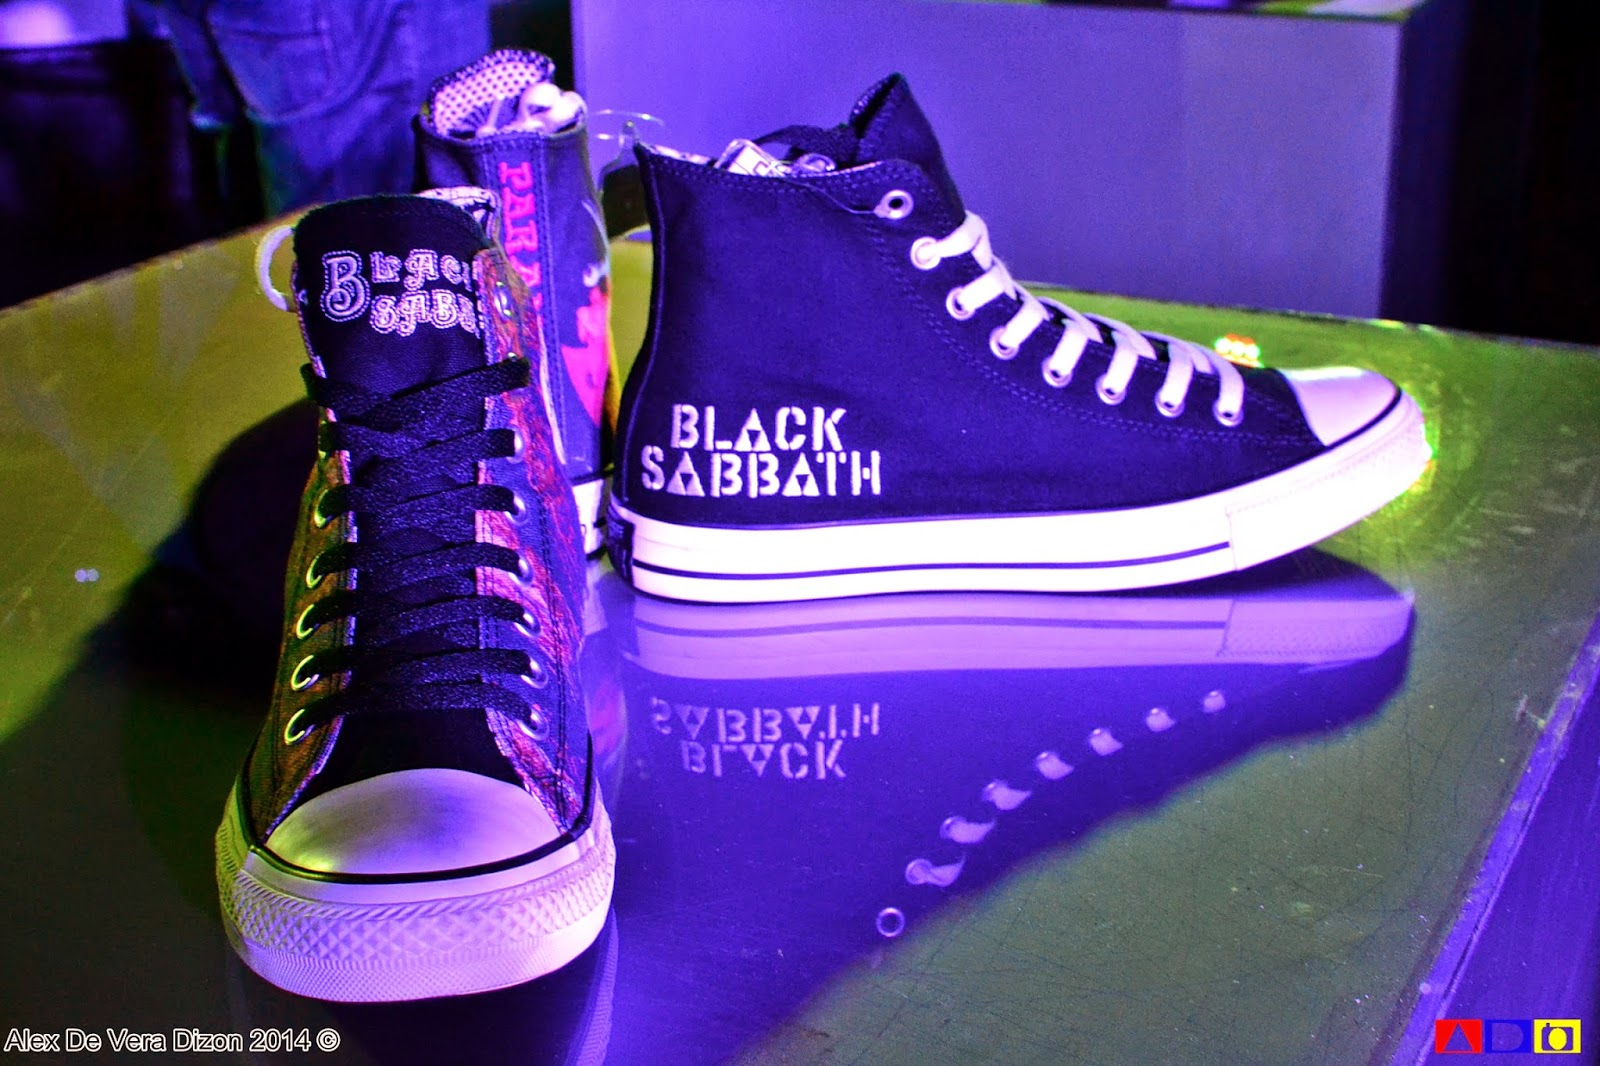 7bcafd5c50bd A sneaker line called the Converse Chuck Taylor All Star Black Sabbath and  Converse by John Varvatos